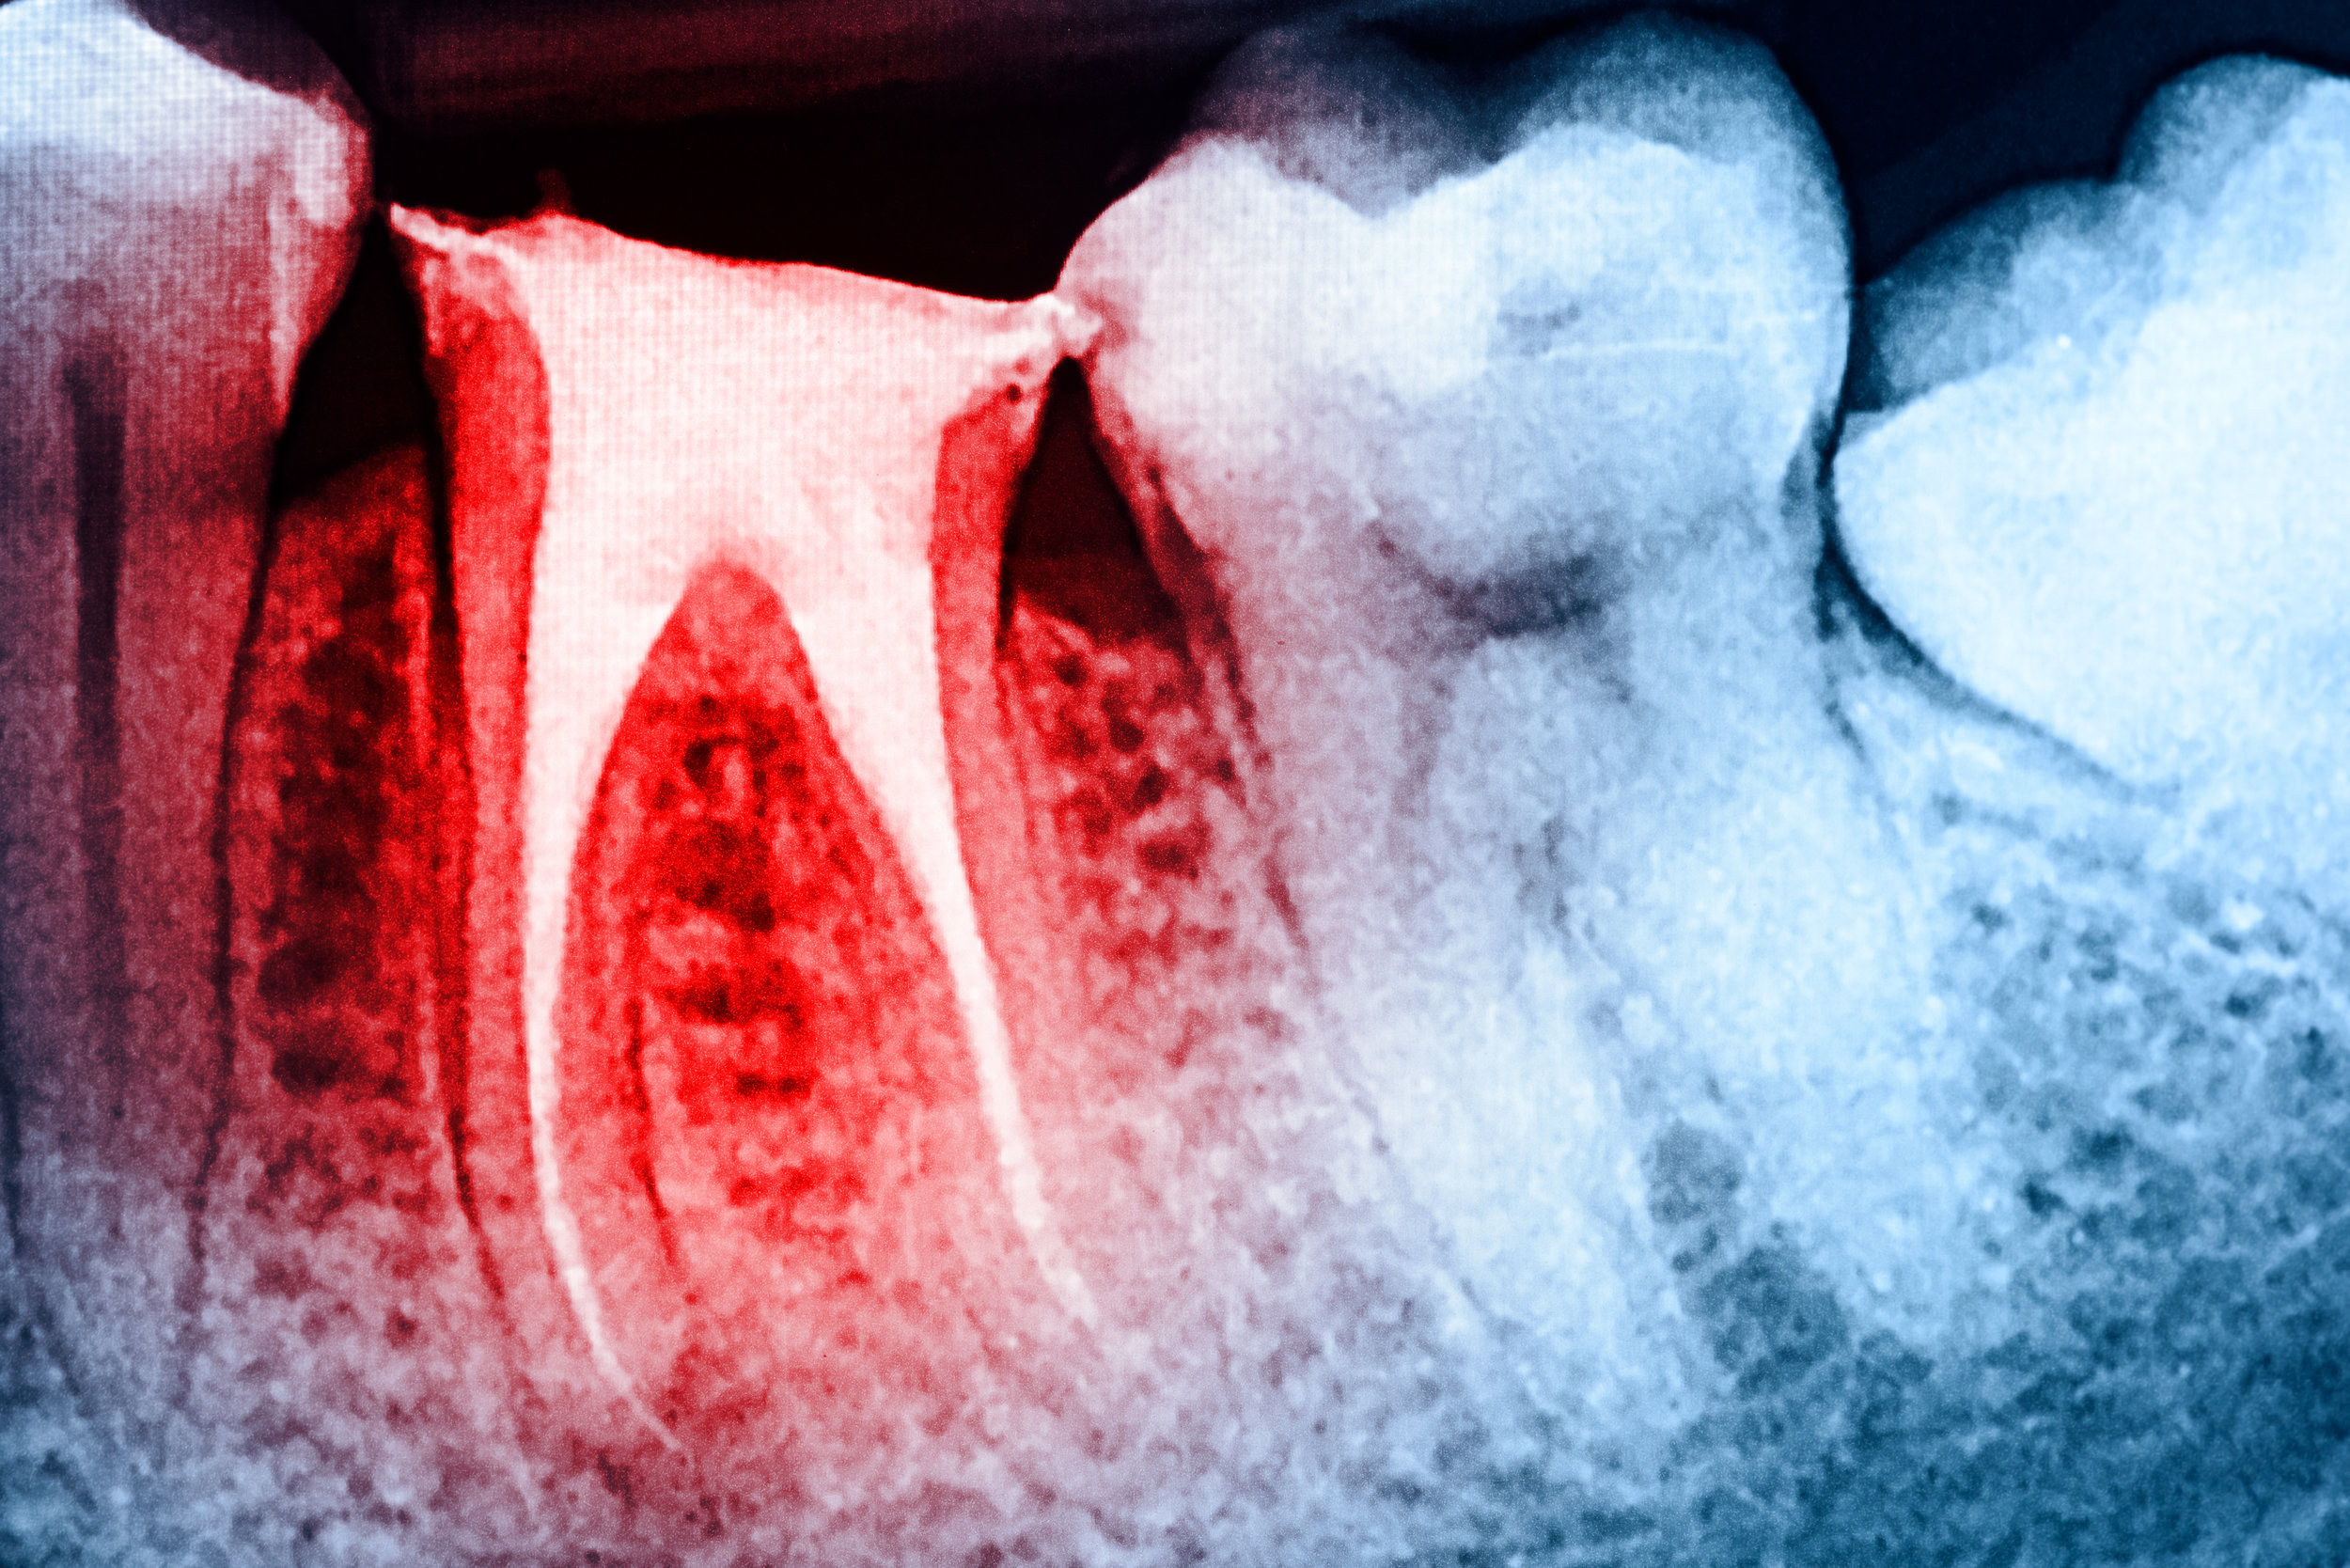 root canal treatment xray